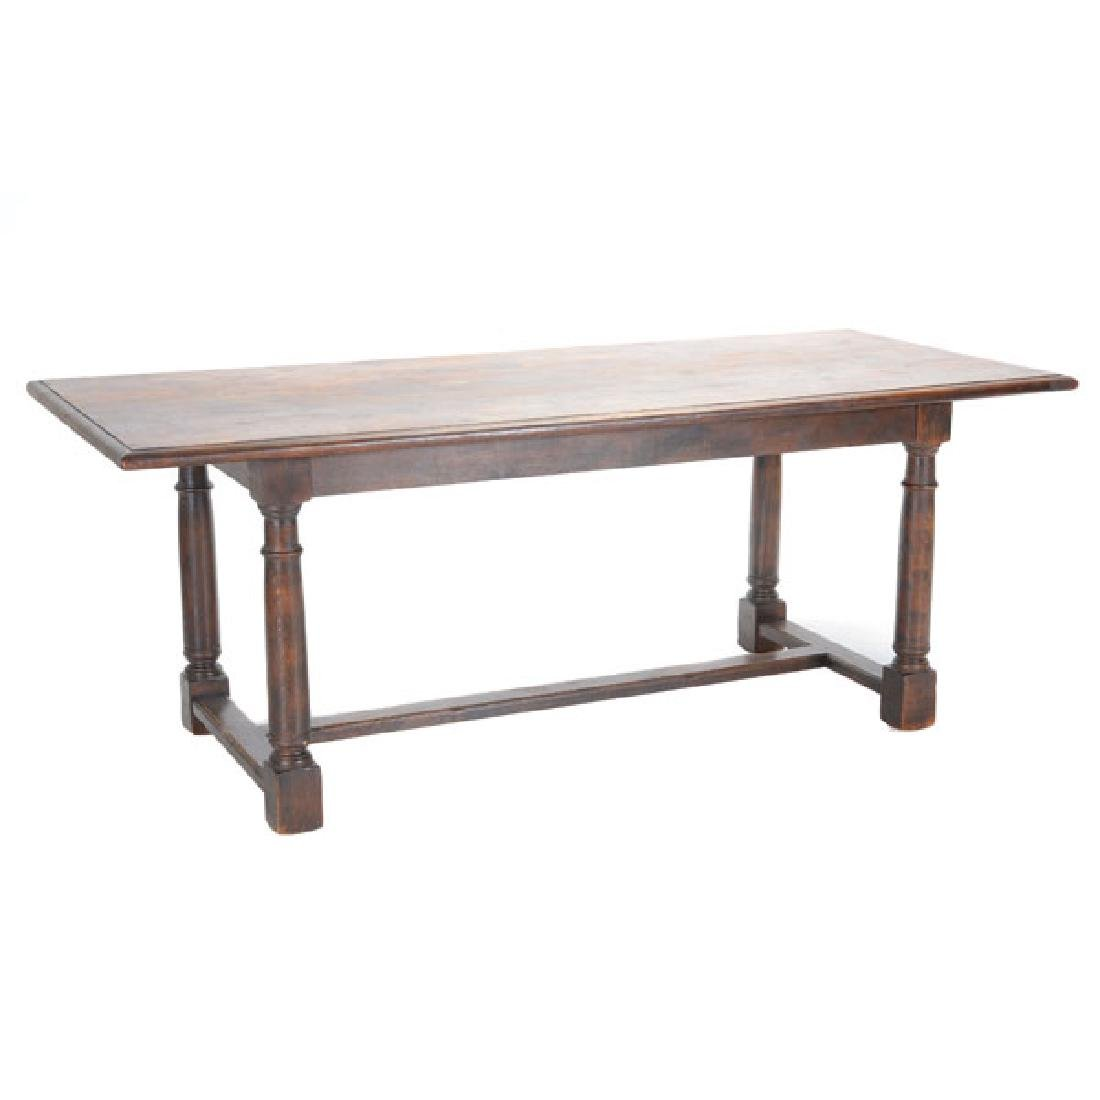 Italian Renaissance Revival Oak Trestle Table with